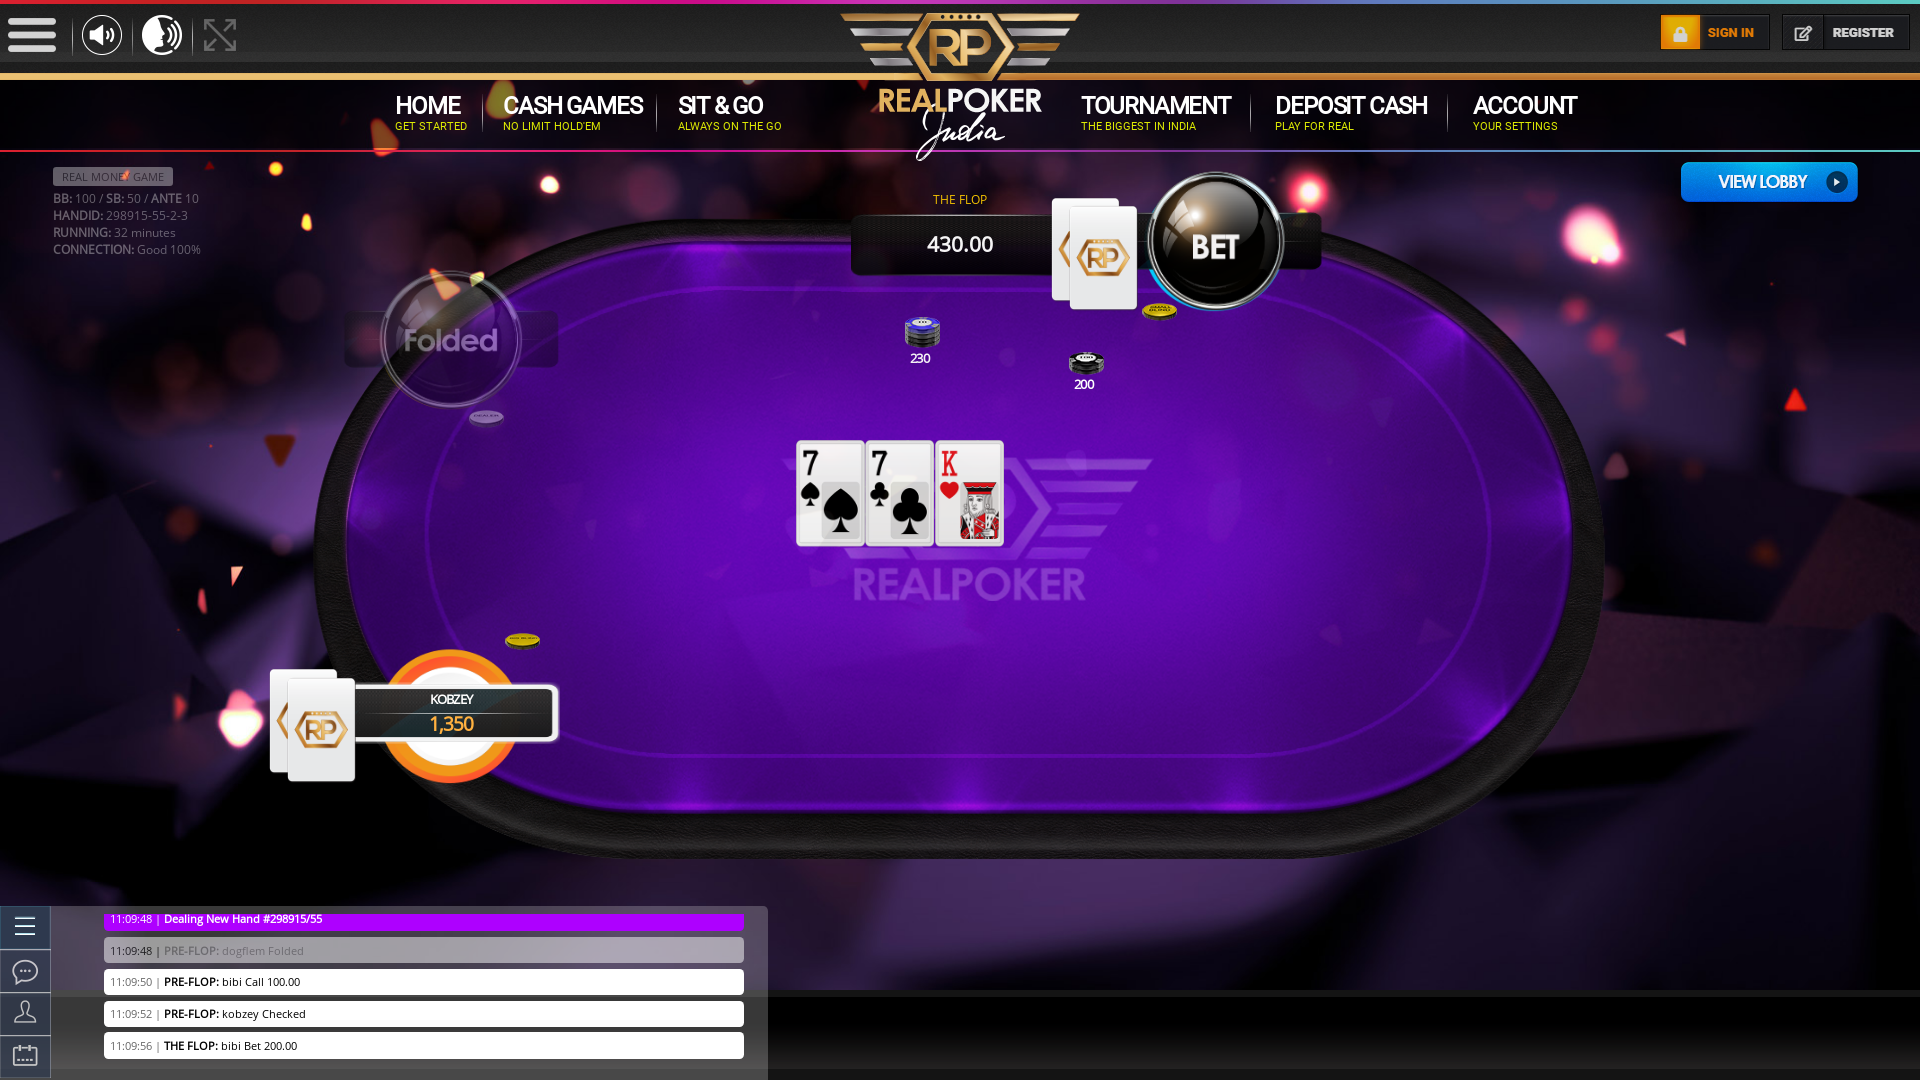 The 54th hand dealt between kobzey, bibi, dogflem,  on poker india